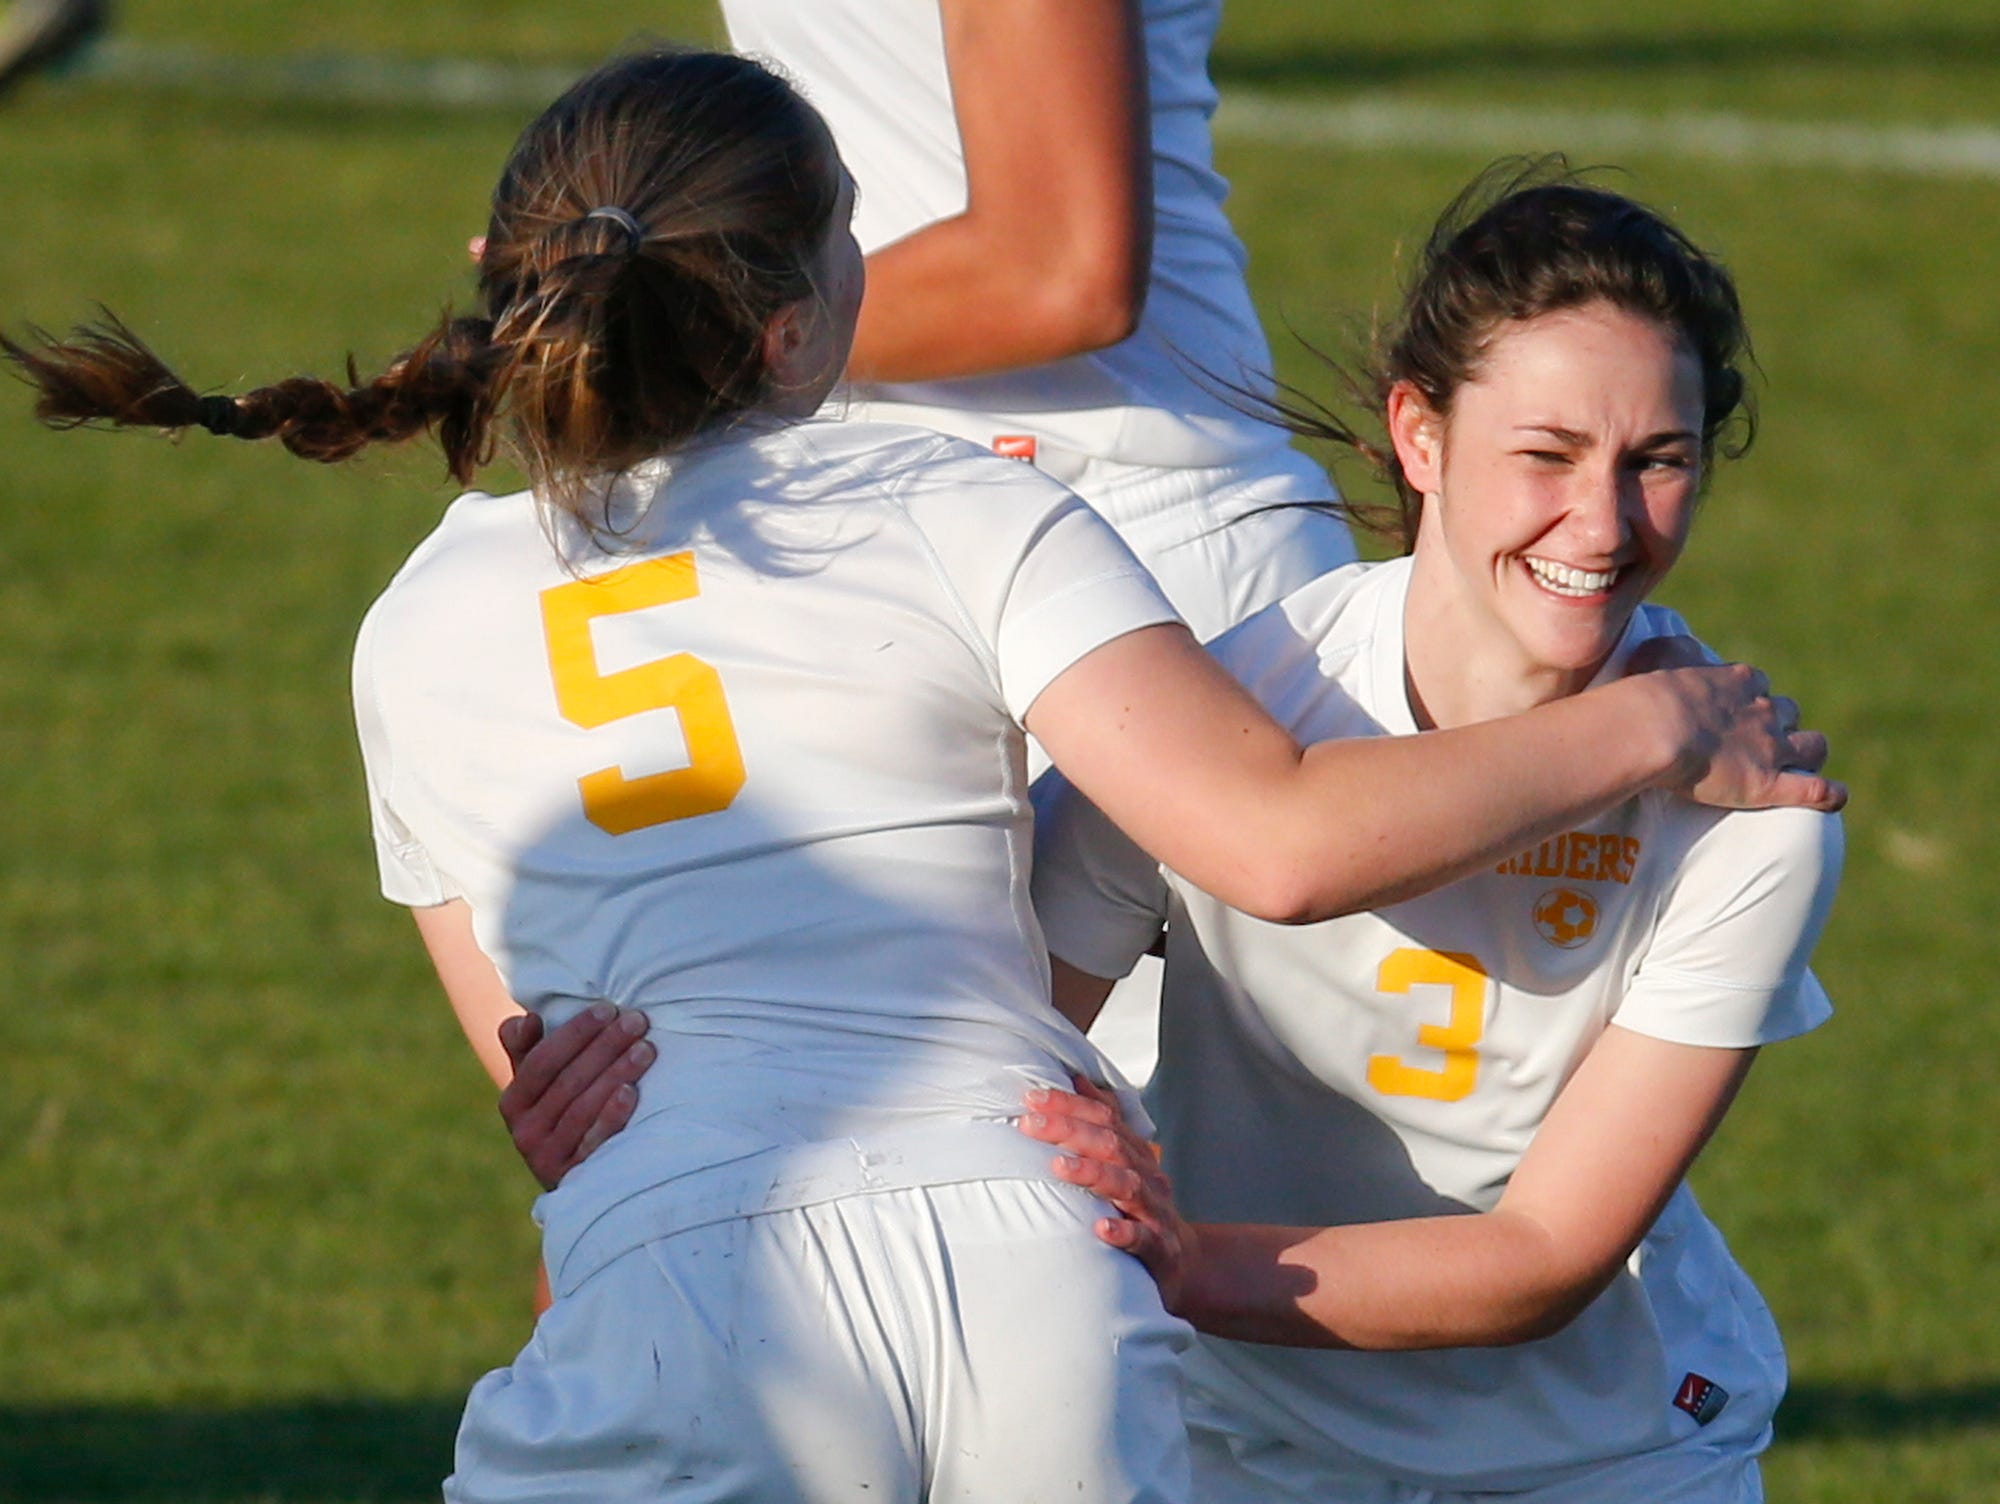 Caesar Rodney's Lynsy Gruwell (left) celebrates with Aleya Cummings after the first of Cummings' two goals on Friday night. No. 2 CR edged No. 3 Charter of Wilmington 2-1 in a Division I matchup.